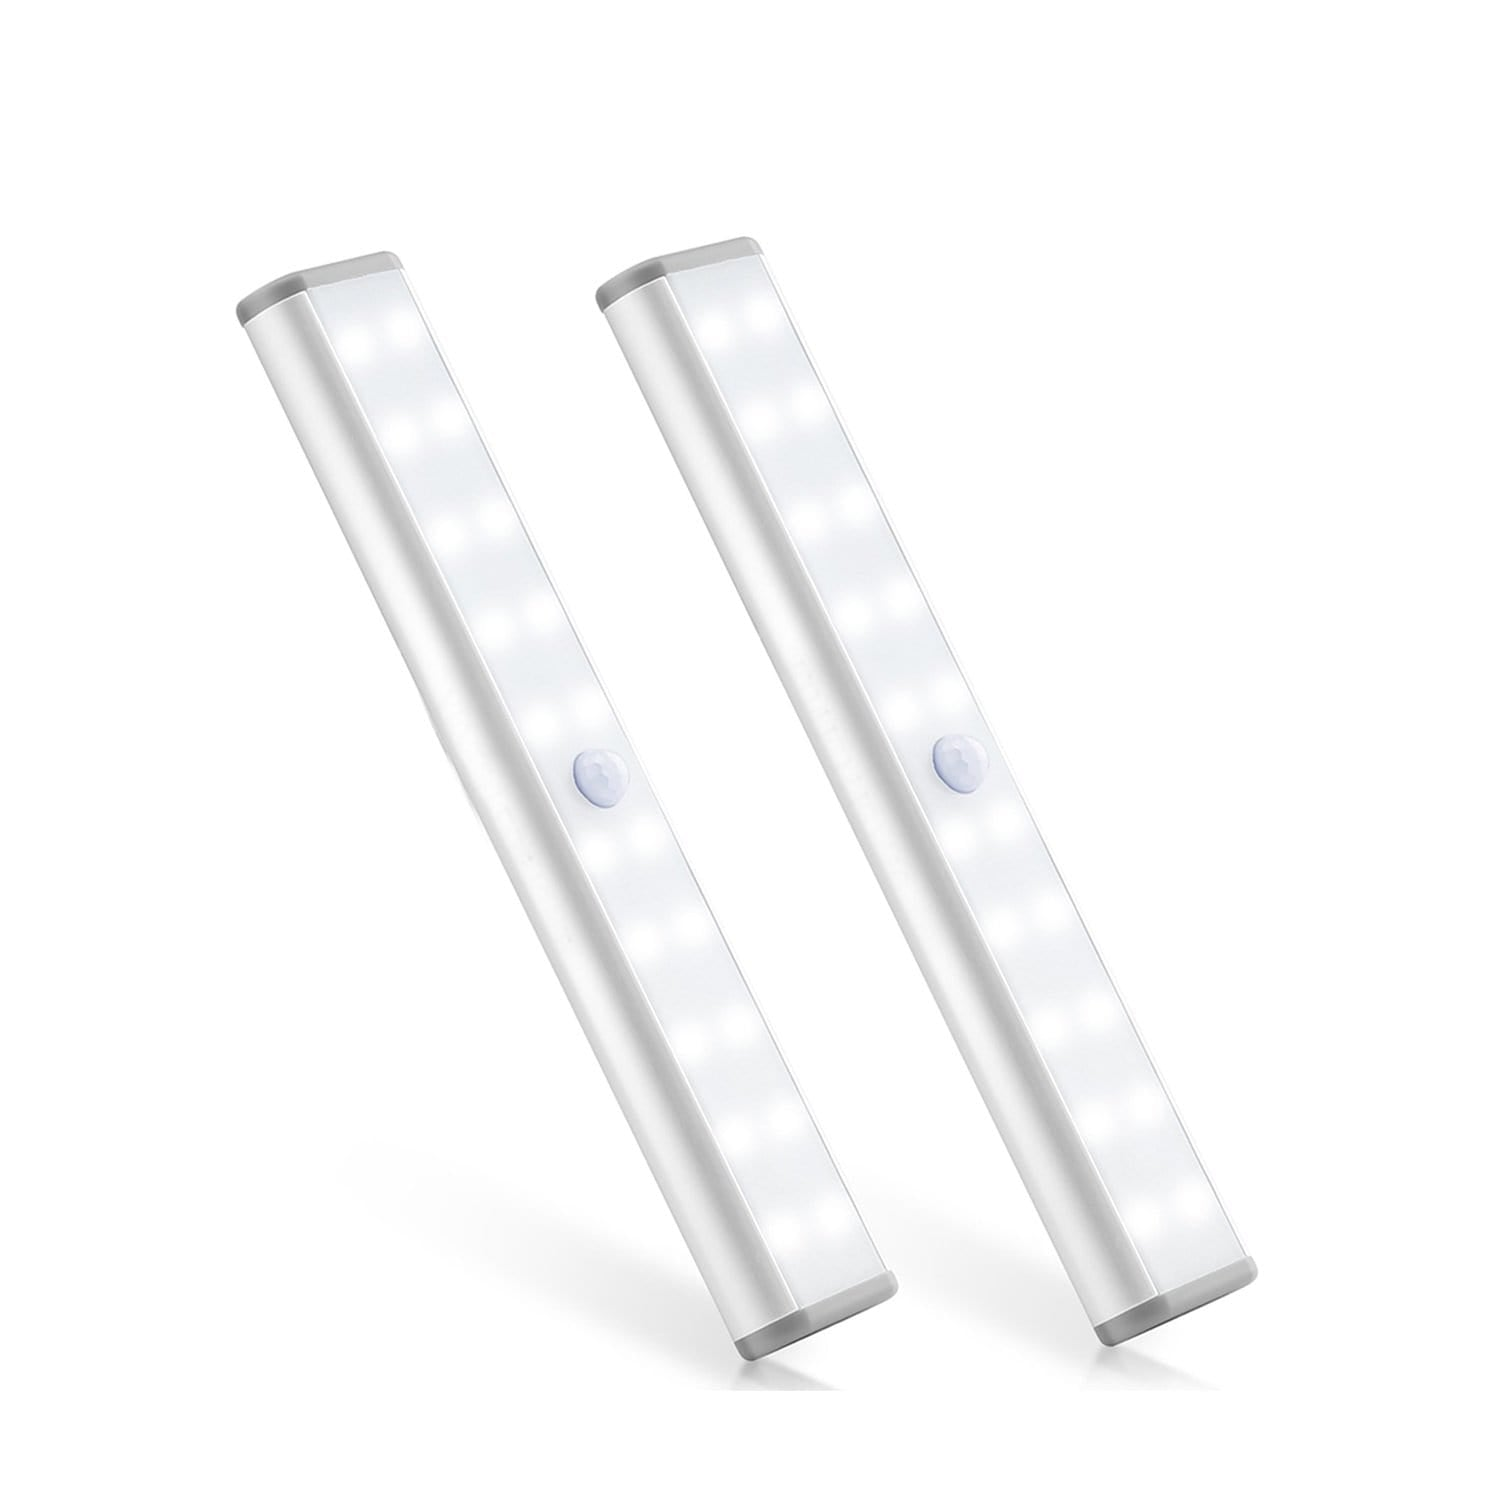 LEPOTEC Wireless Motion Sensor 20-LED Light | Cabinet & Closet Light